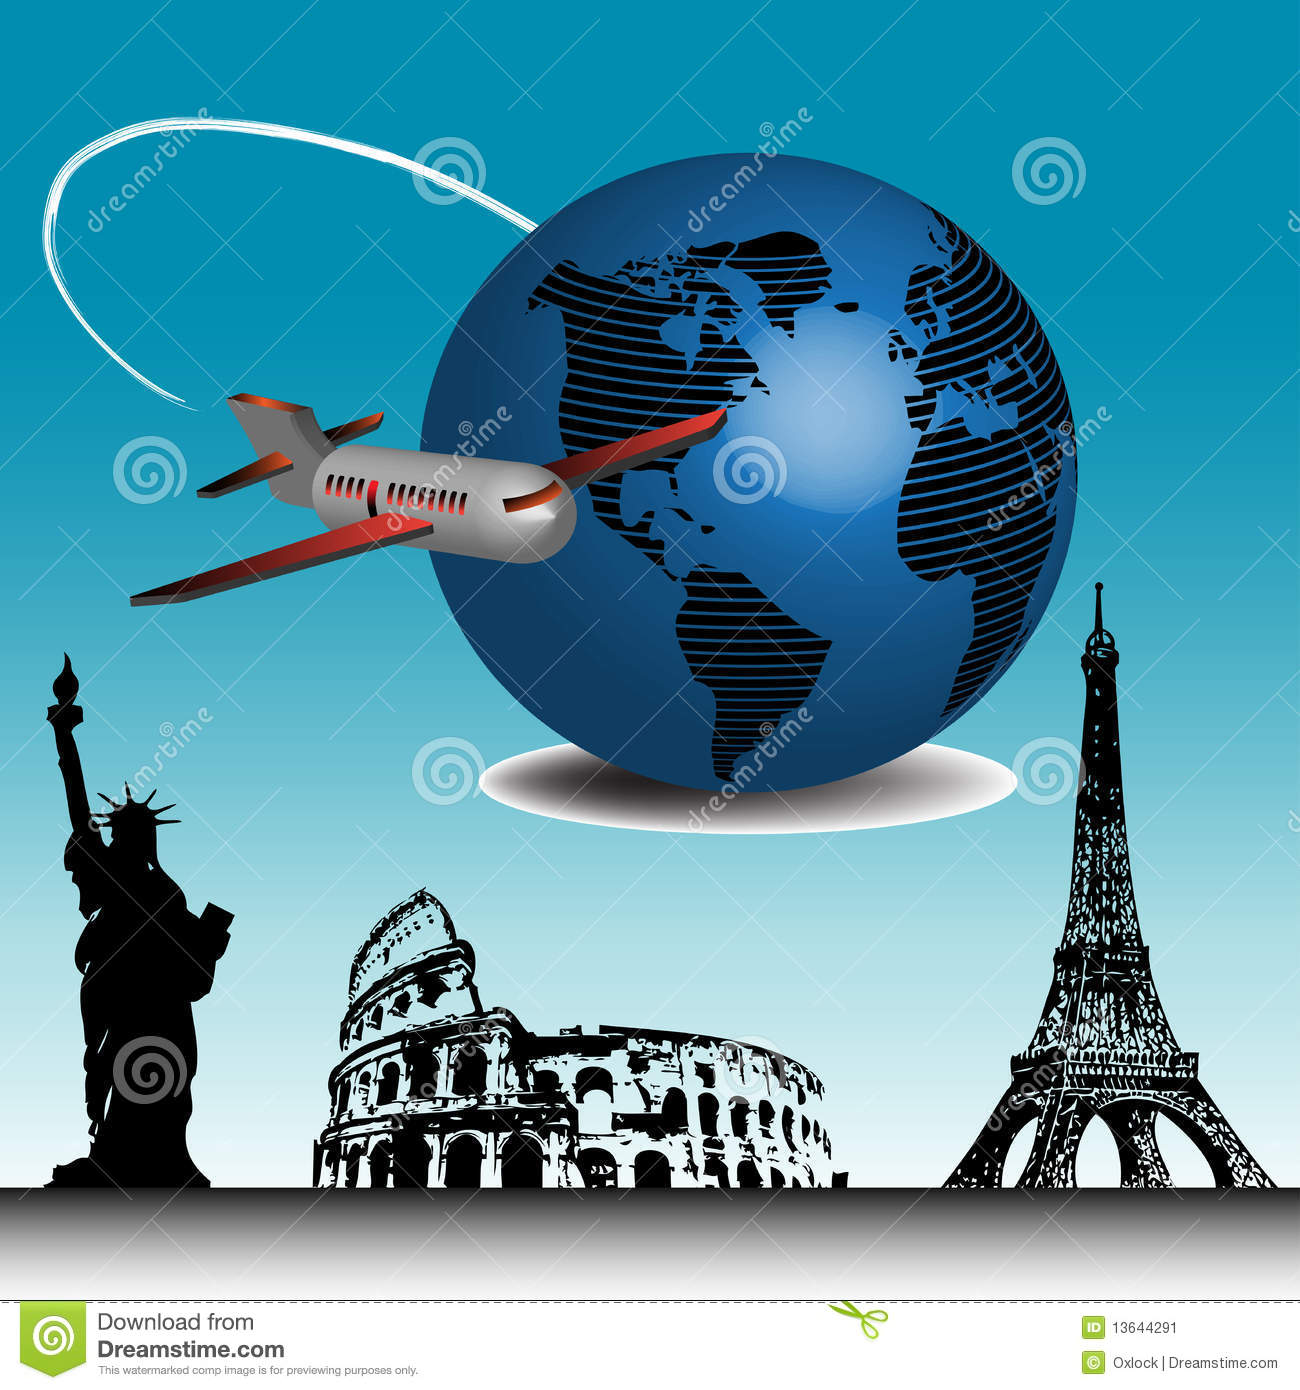 Travelling Around The World Stock Vector - Illustration of